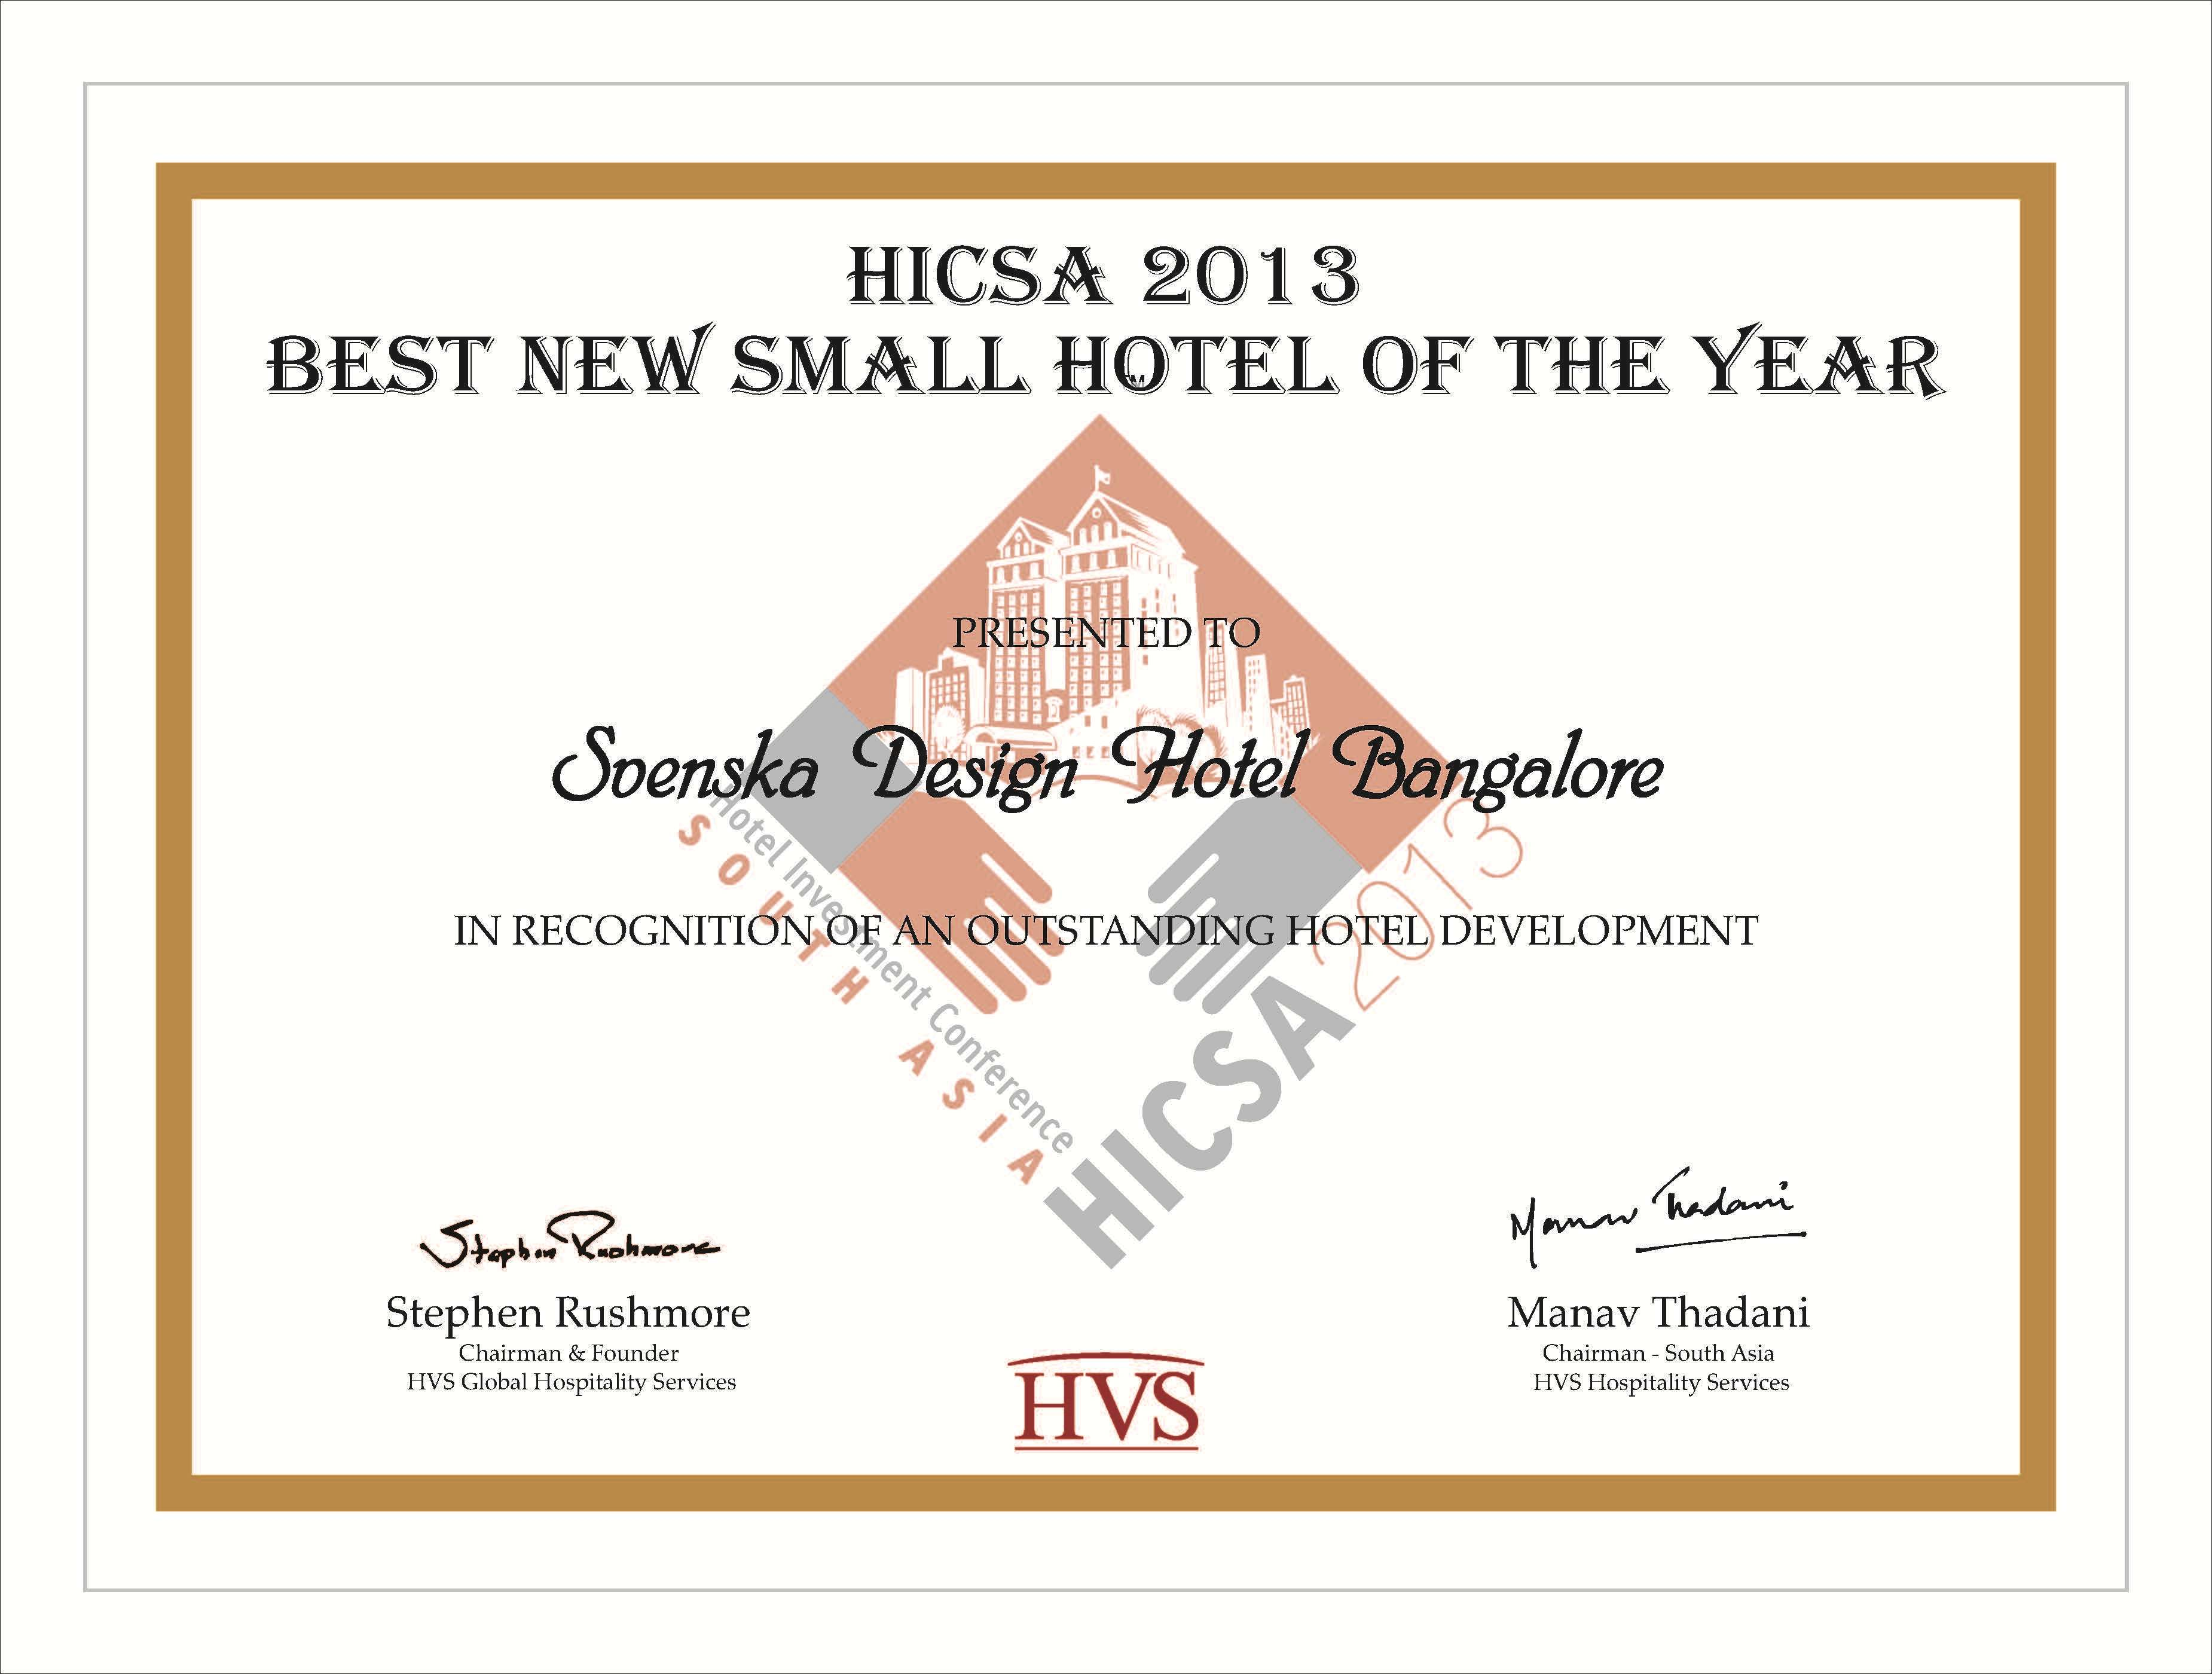 Svenska design hotels 5 star luxury boutique hotels for Design hotel awards